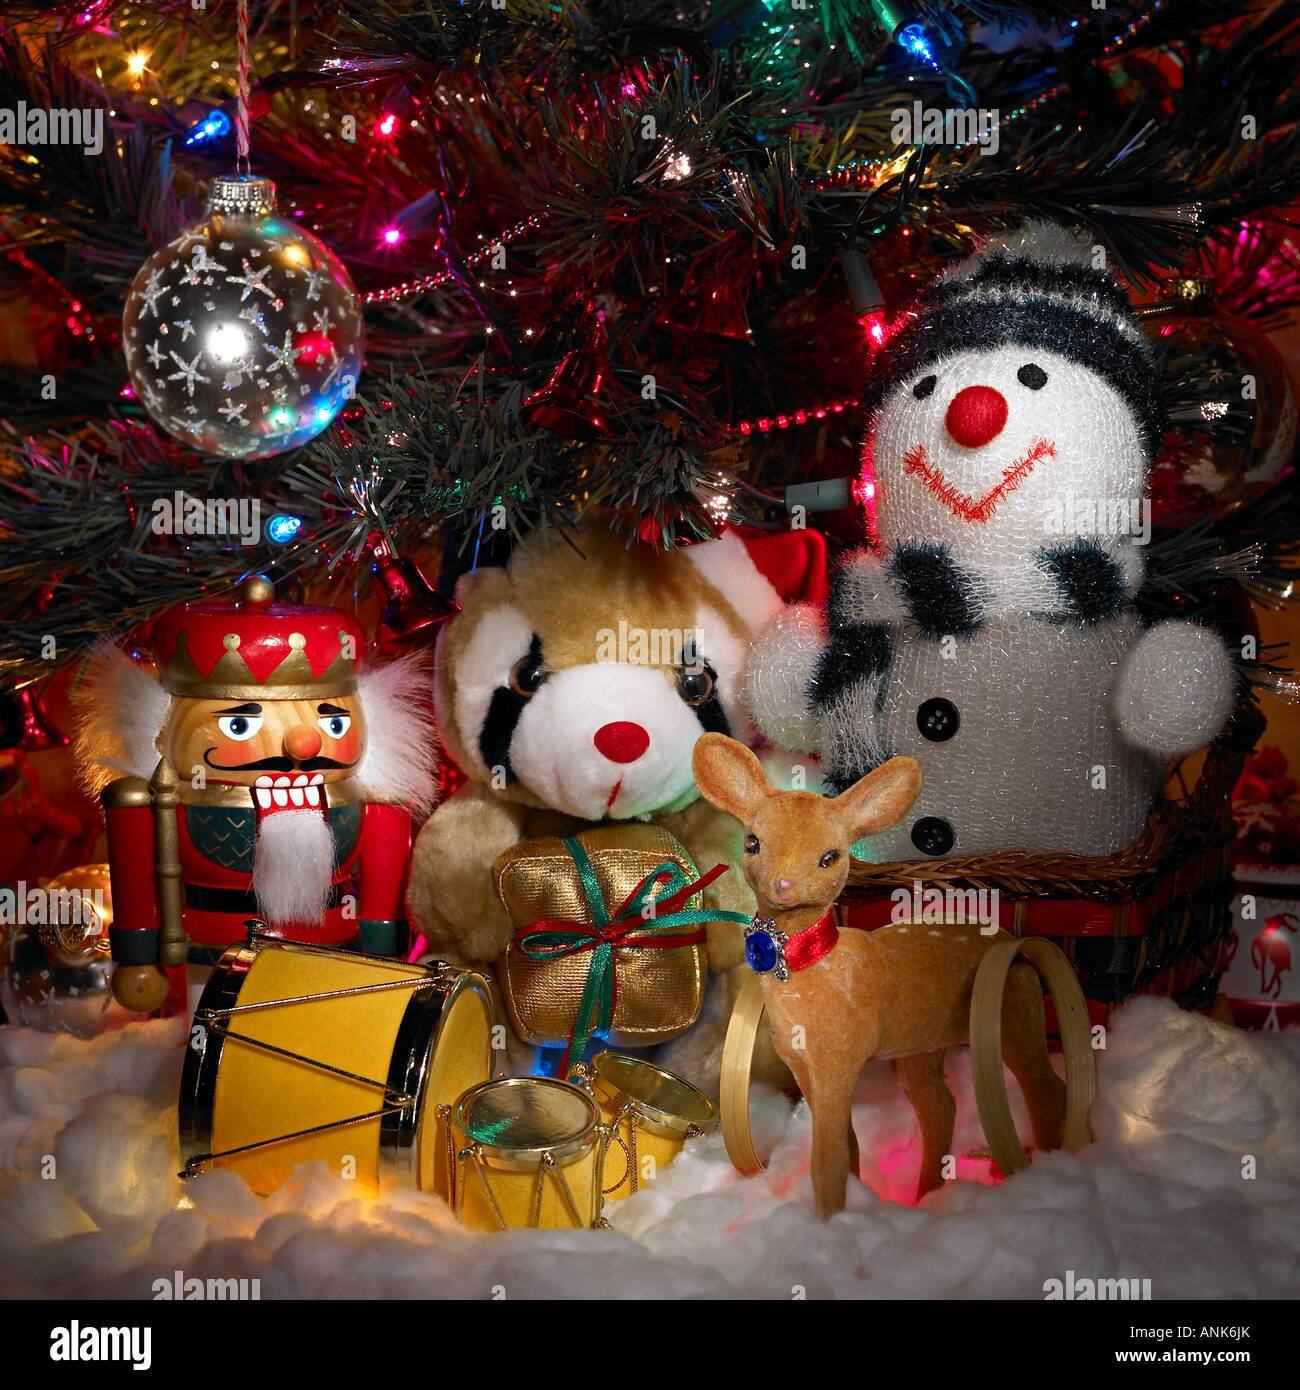 Toys Under The Christmas Tree With Lights And Ornaments Stock Photo